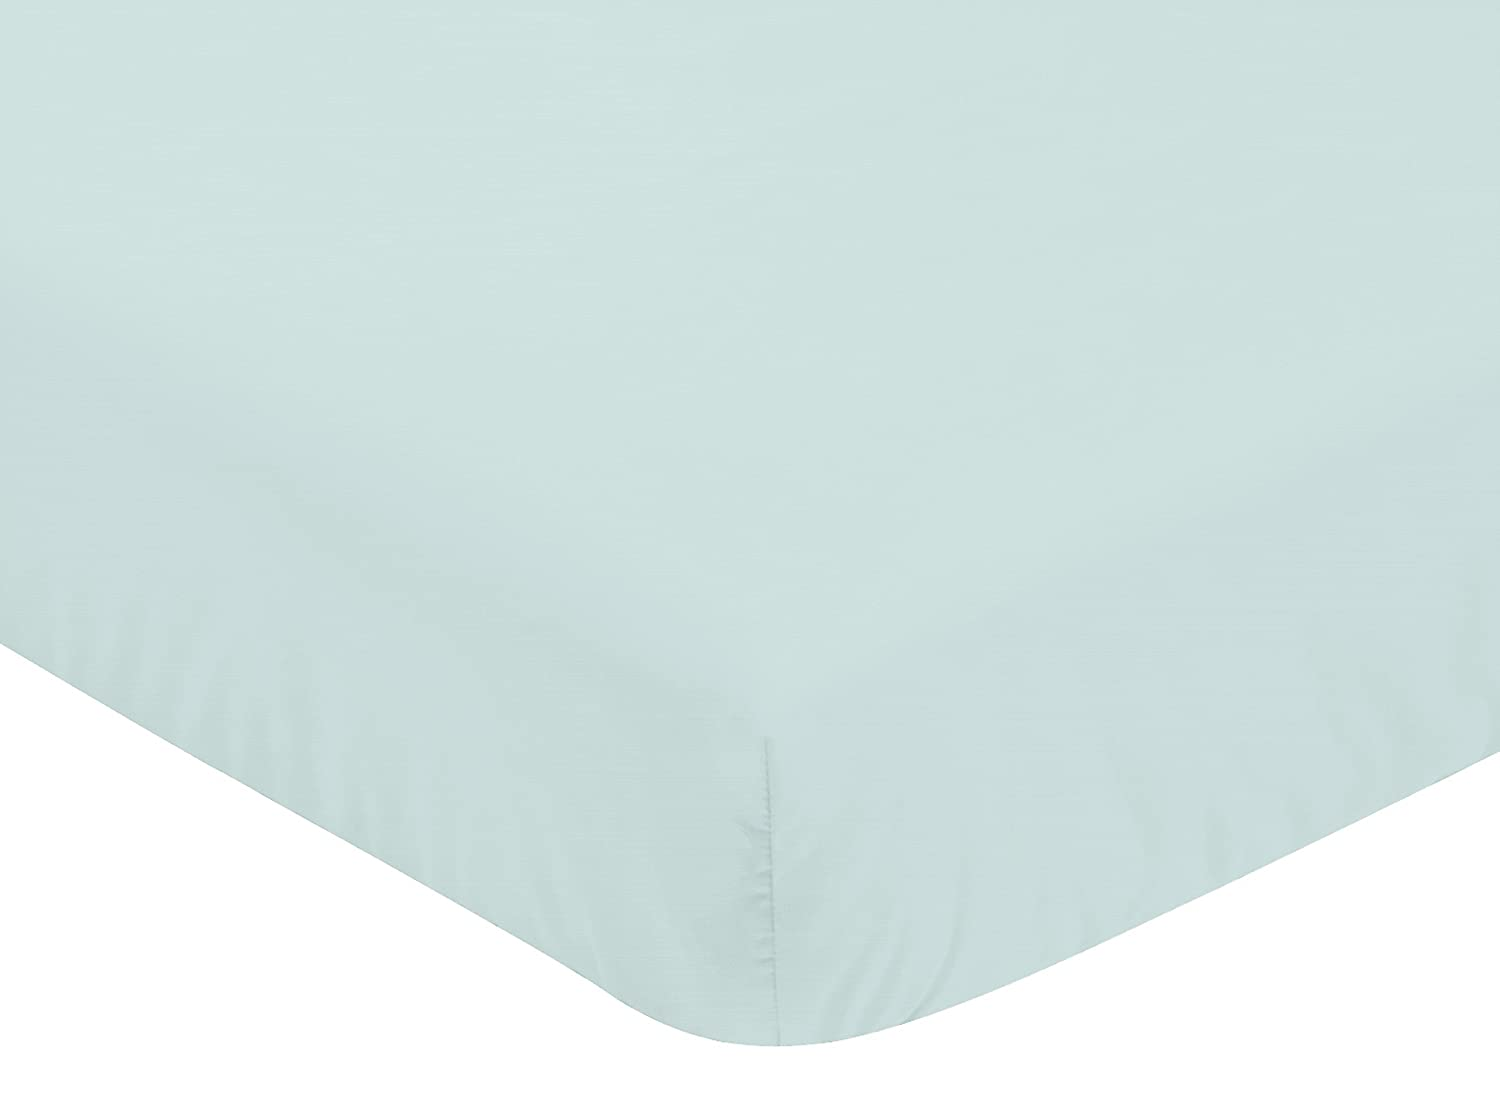 Solid Aqua Blue Baby or Toddler Fitted Crib Sheet for Mountains Collection by Sweet Jojo Designs